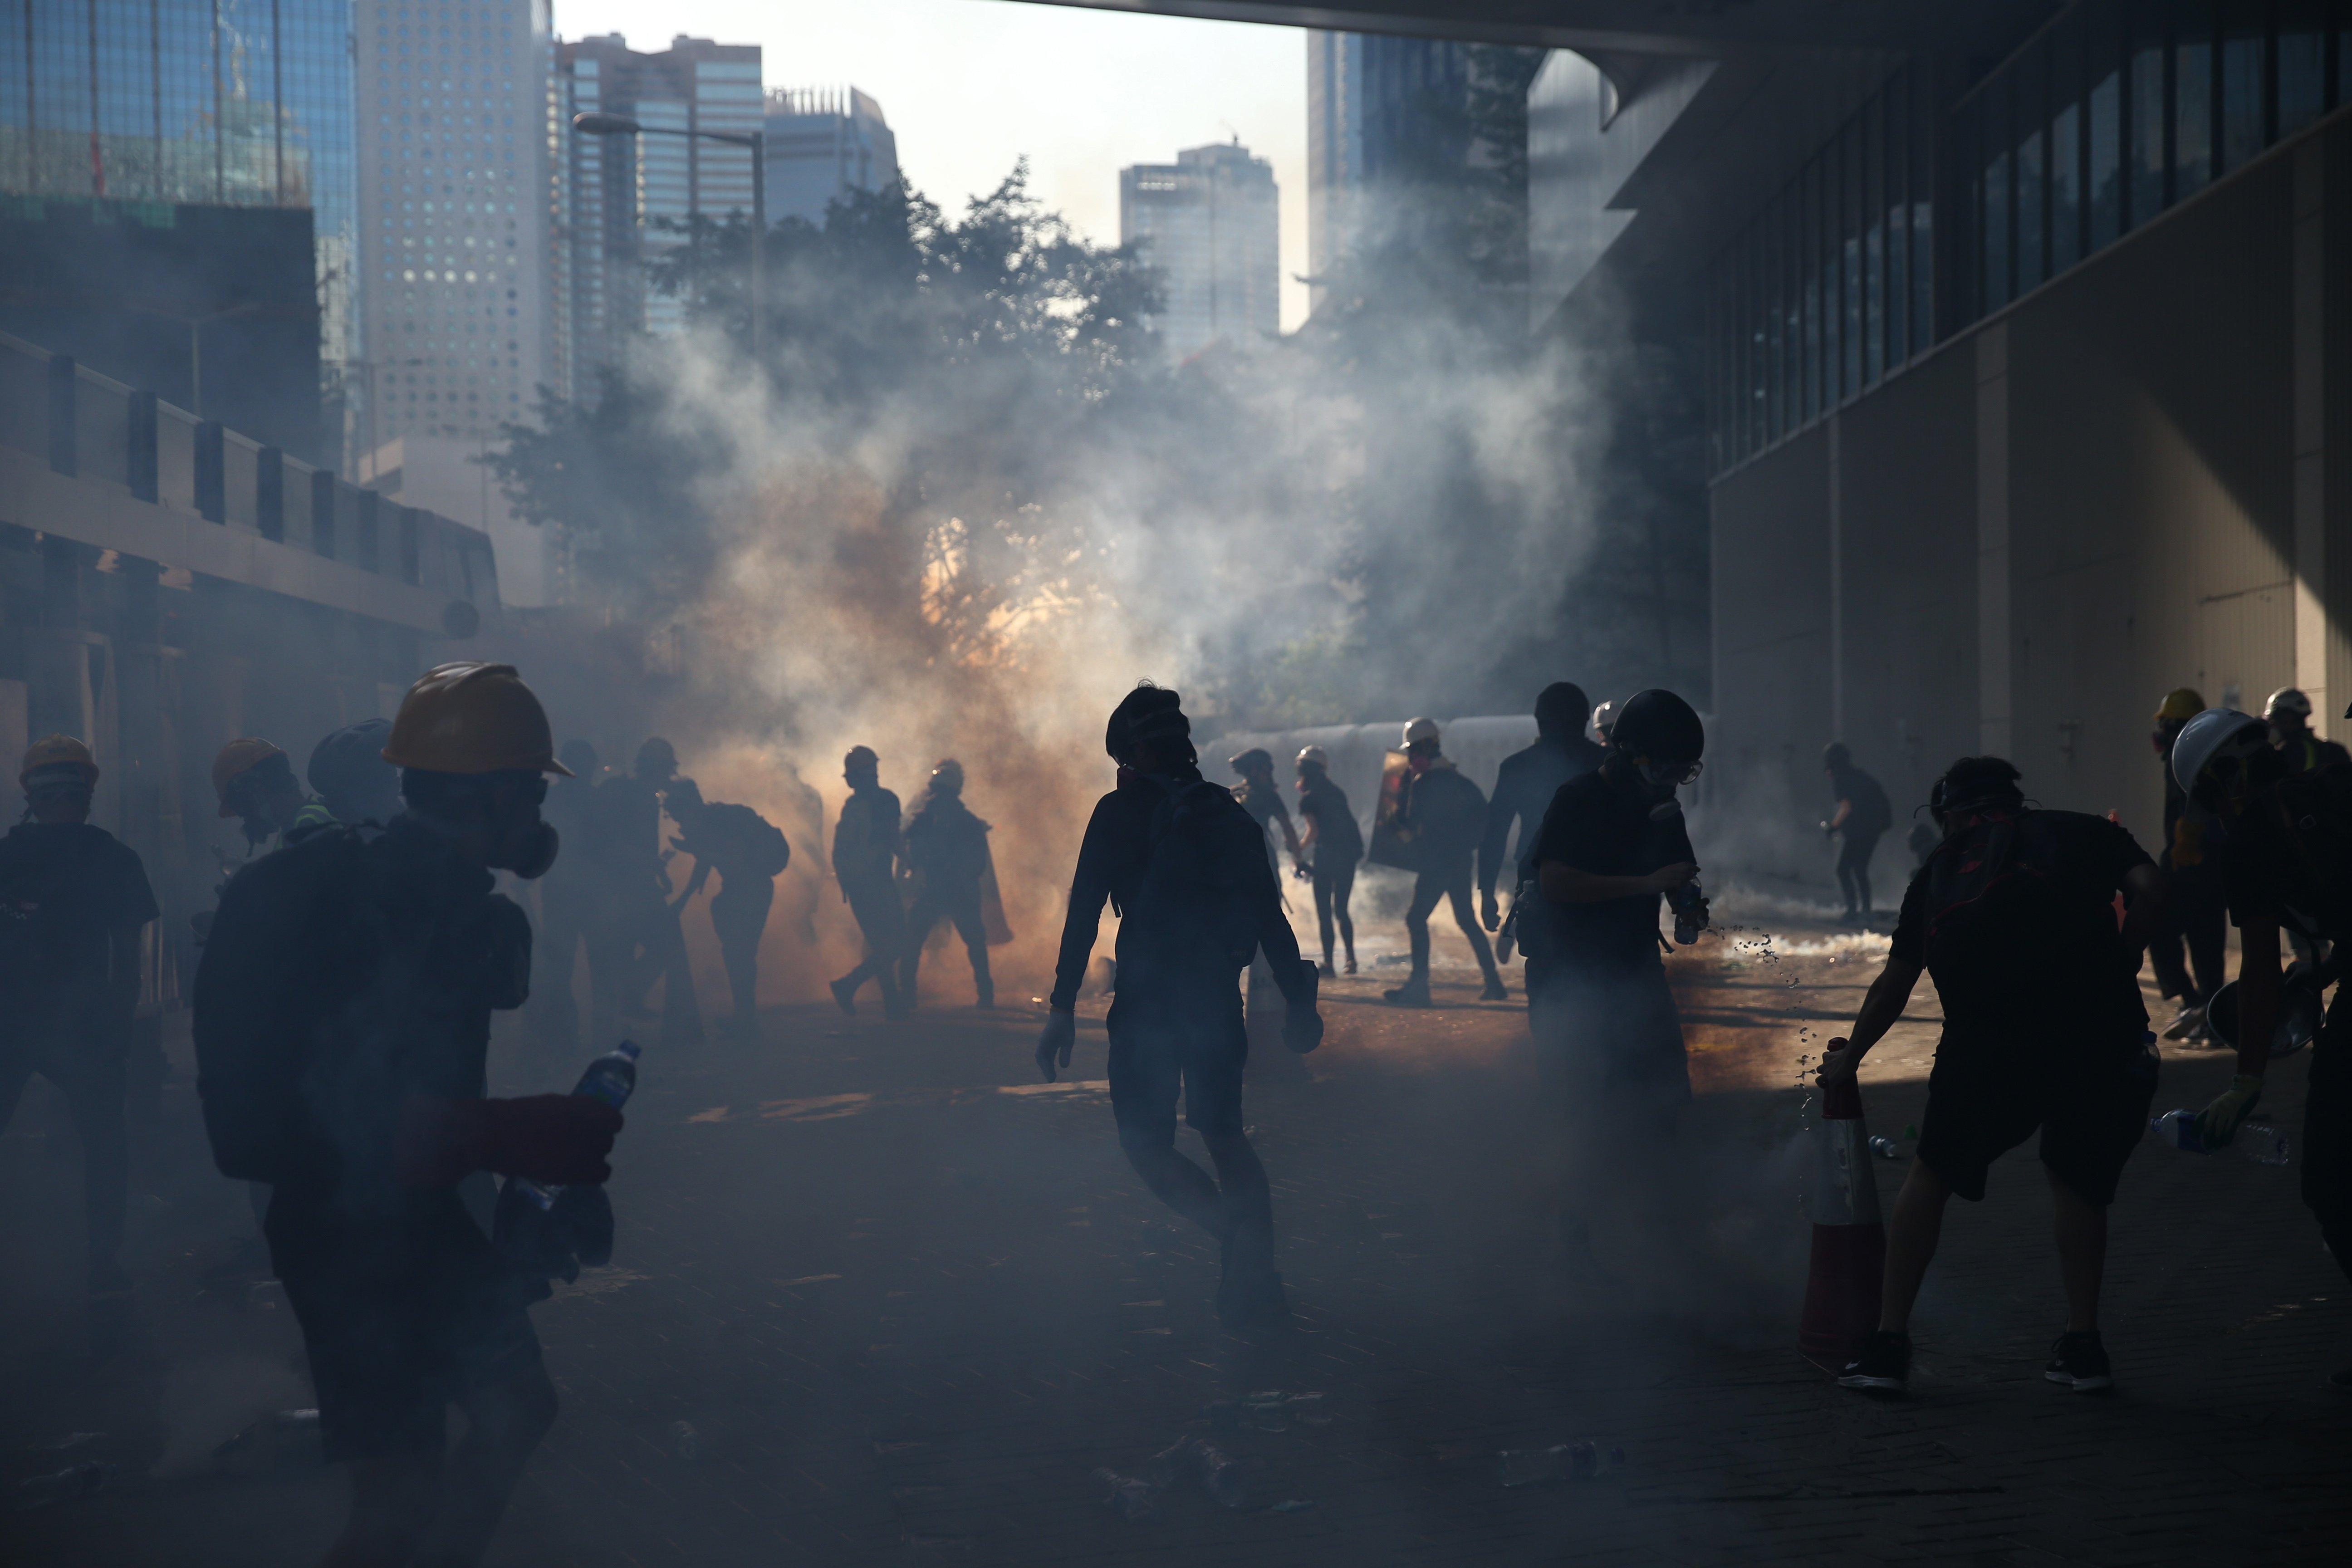 Anti-extradition protesters react after police fired tear gas at them in the Admiralty area of Hong Kong, China.